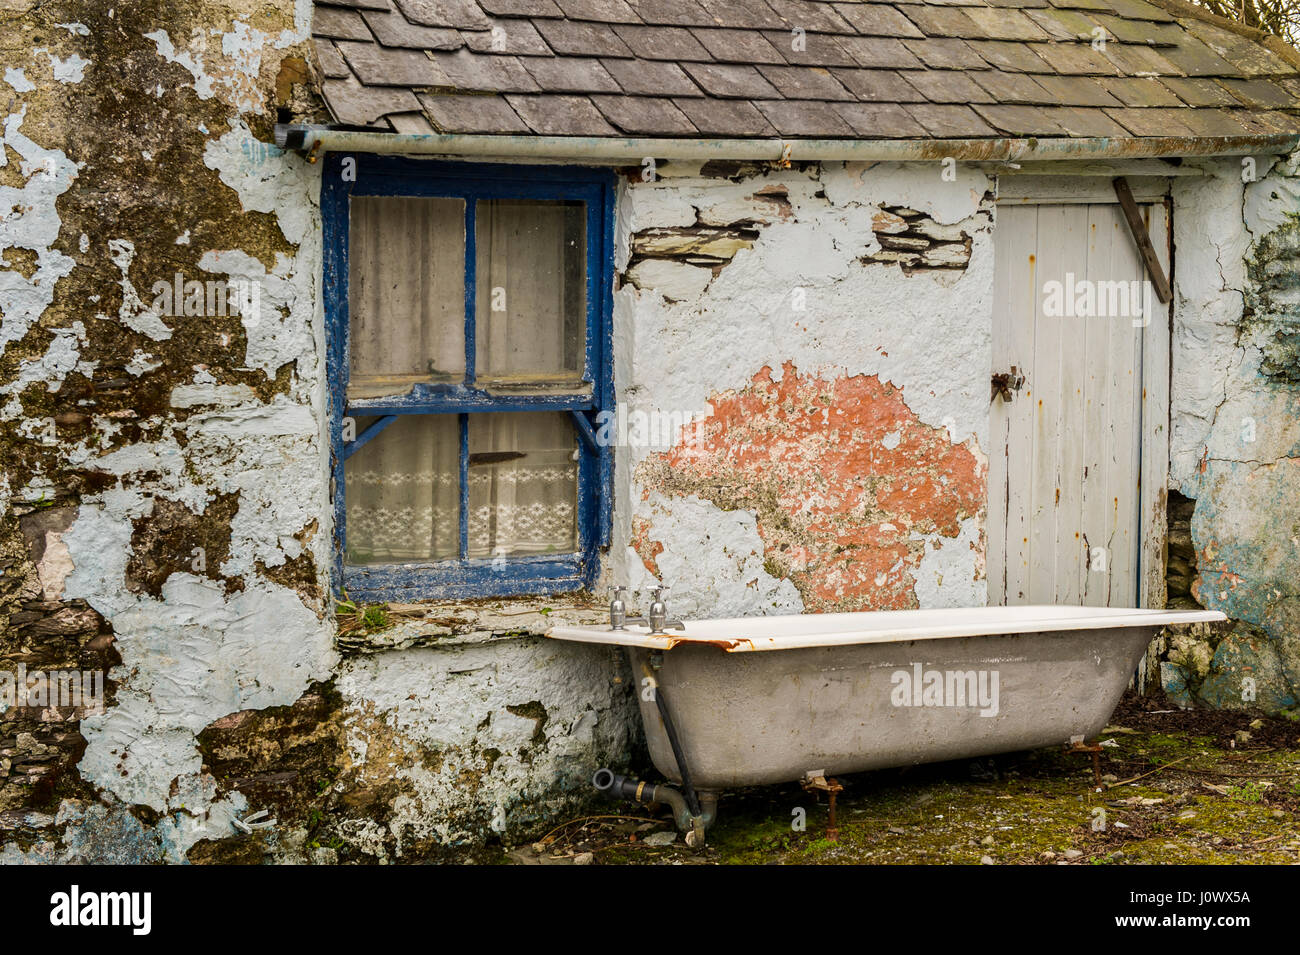 bath-disused-and-abandoned-outside-an-old-shed-with-a-window-door-J0WX5A.jpg